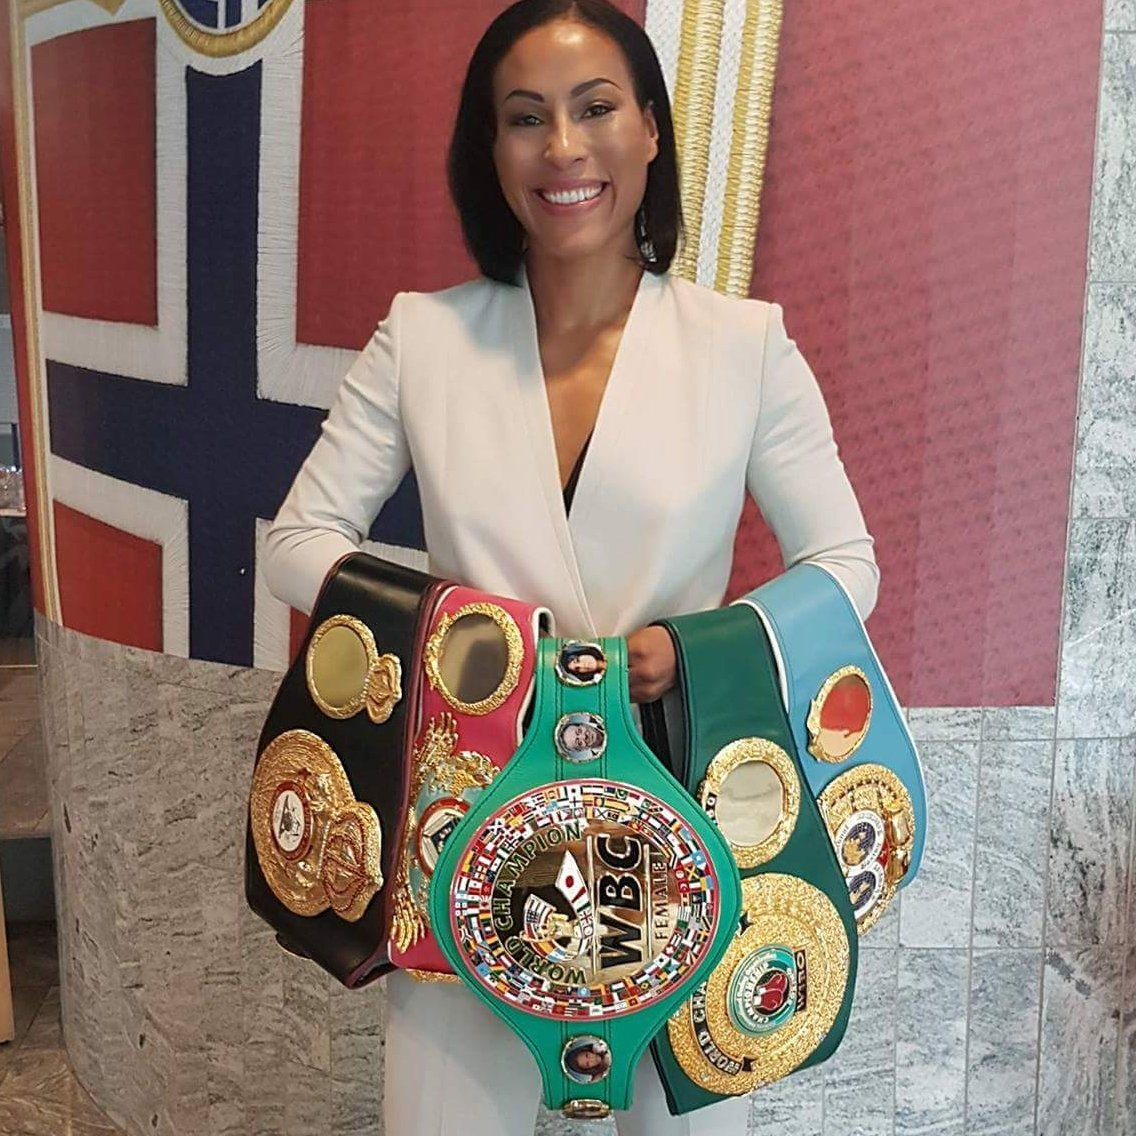 Cecilia Braekhus Press Room